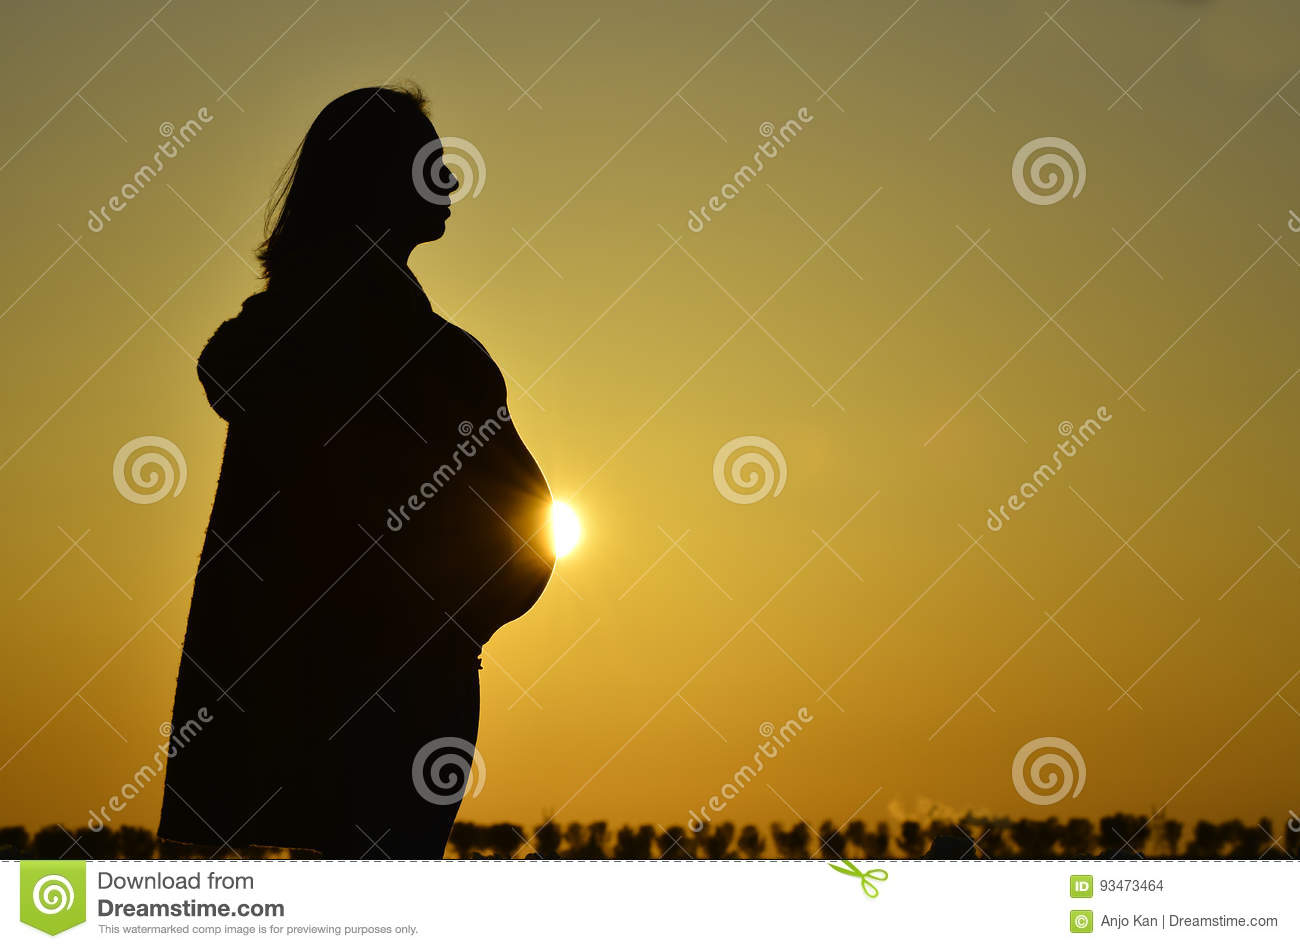 Pregnant woman silhouette Royalty Free Vector Image